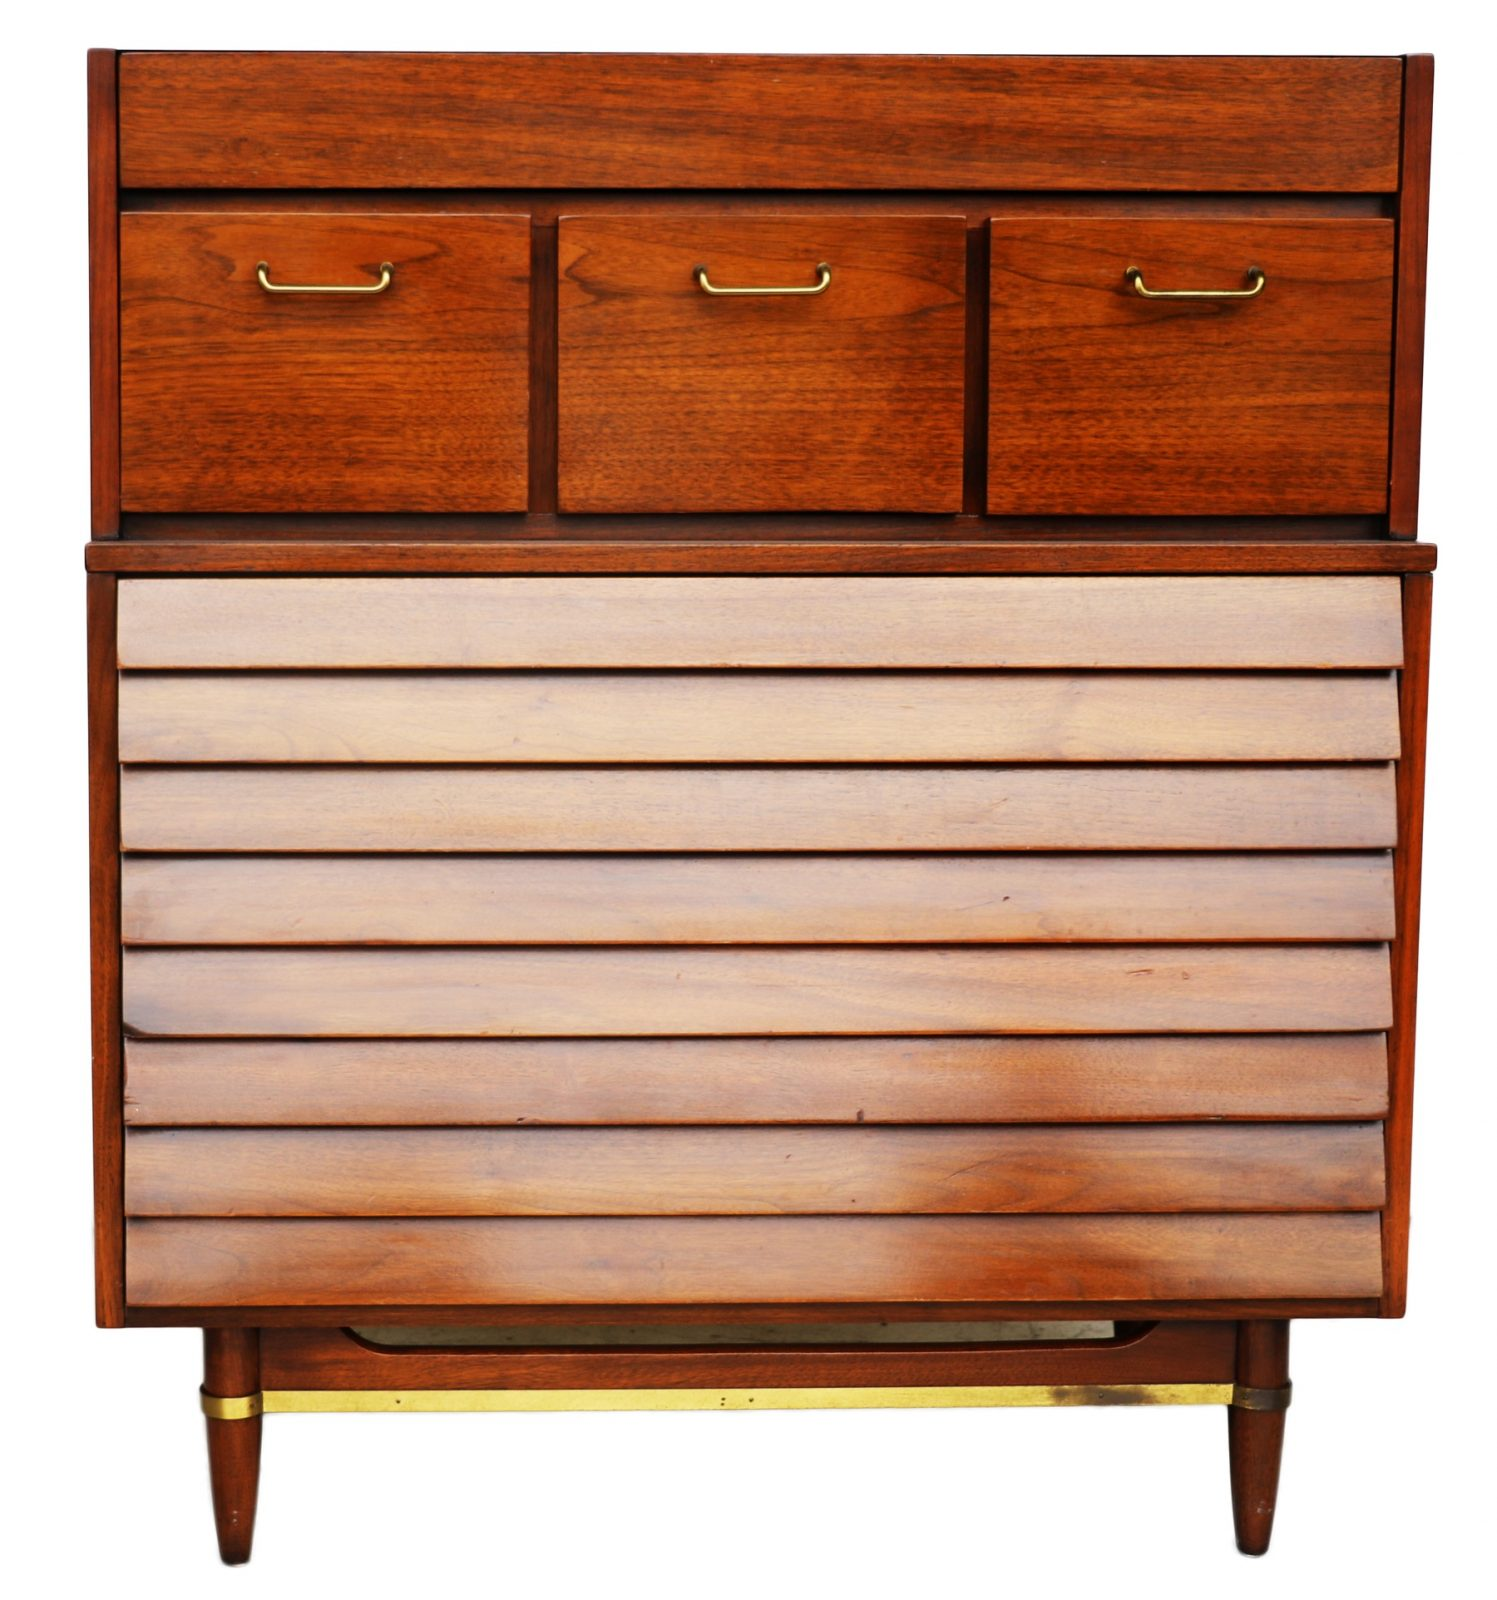 Mid Century Modern Split Level 1956 Edition Better Homes: American Martinsville High Boy Walnut Dresser Chest Mid